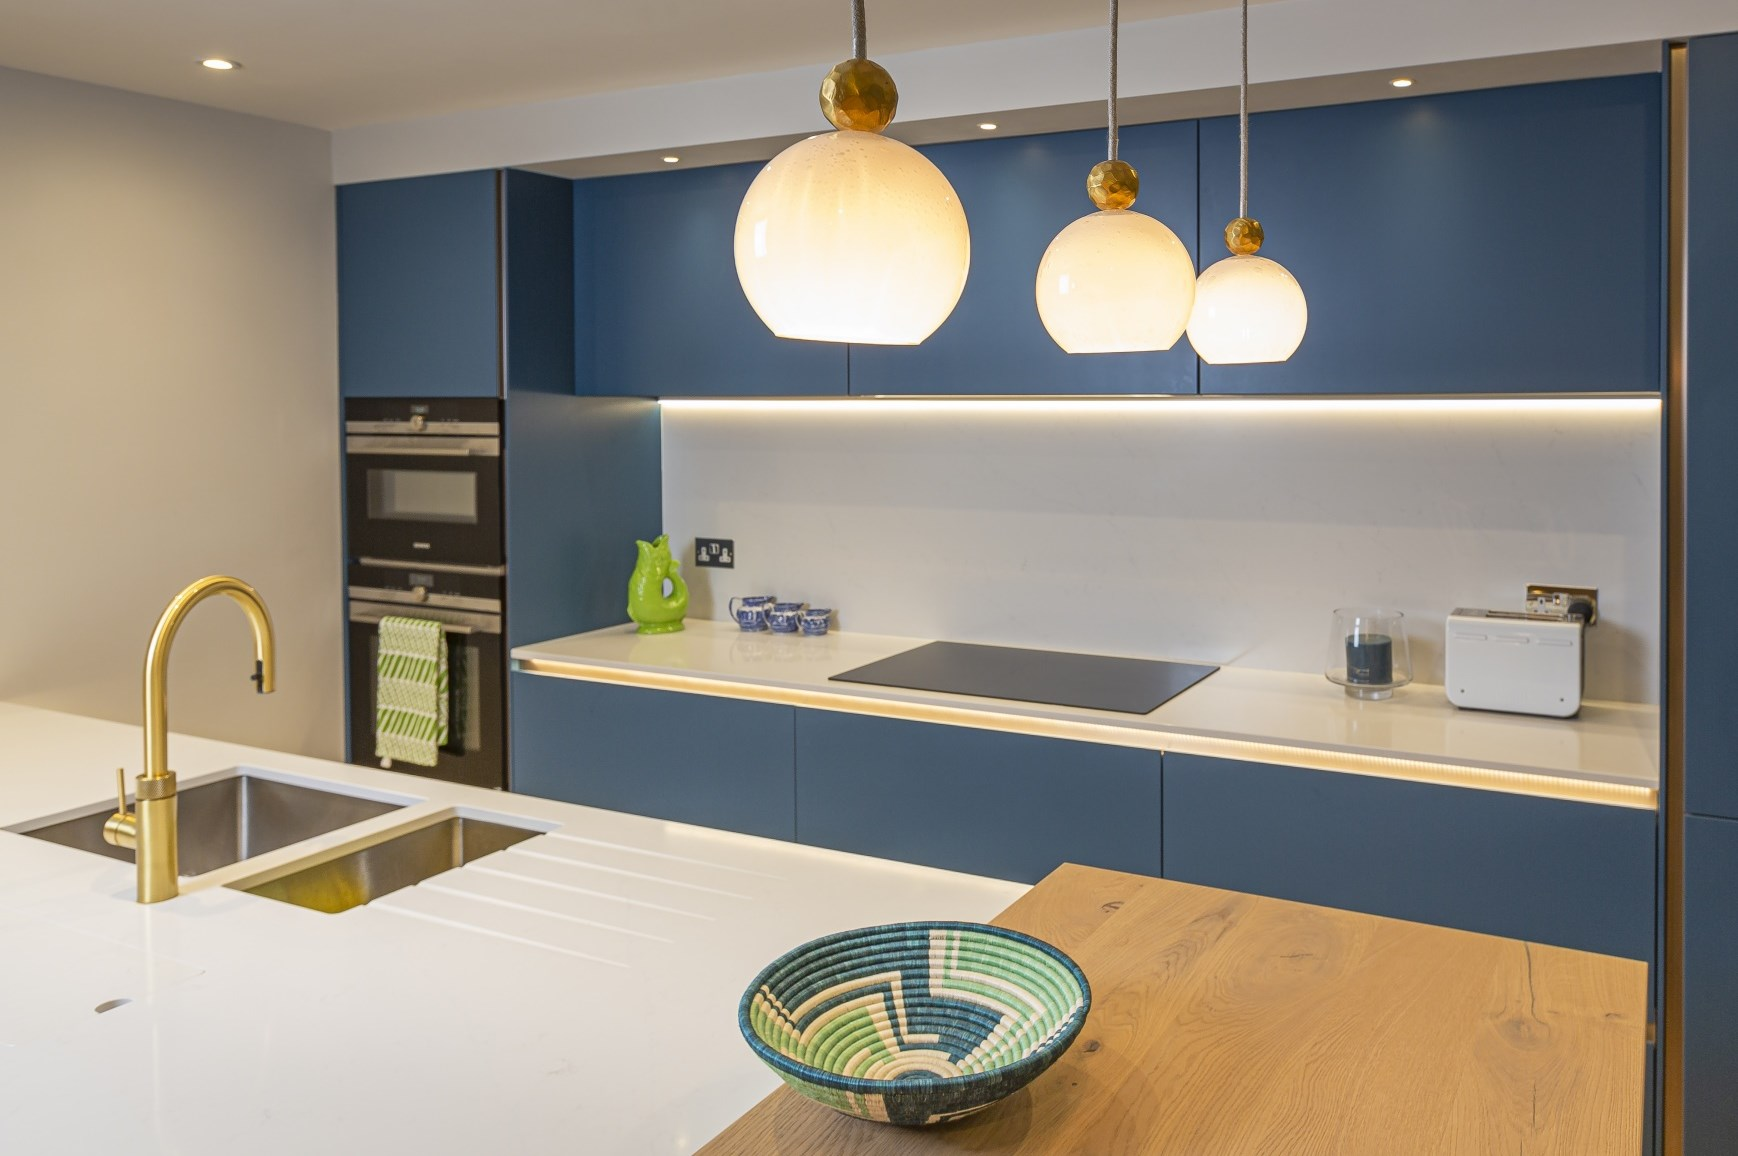 Kitchen_57A2123-Edit.jpg